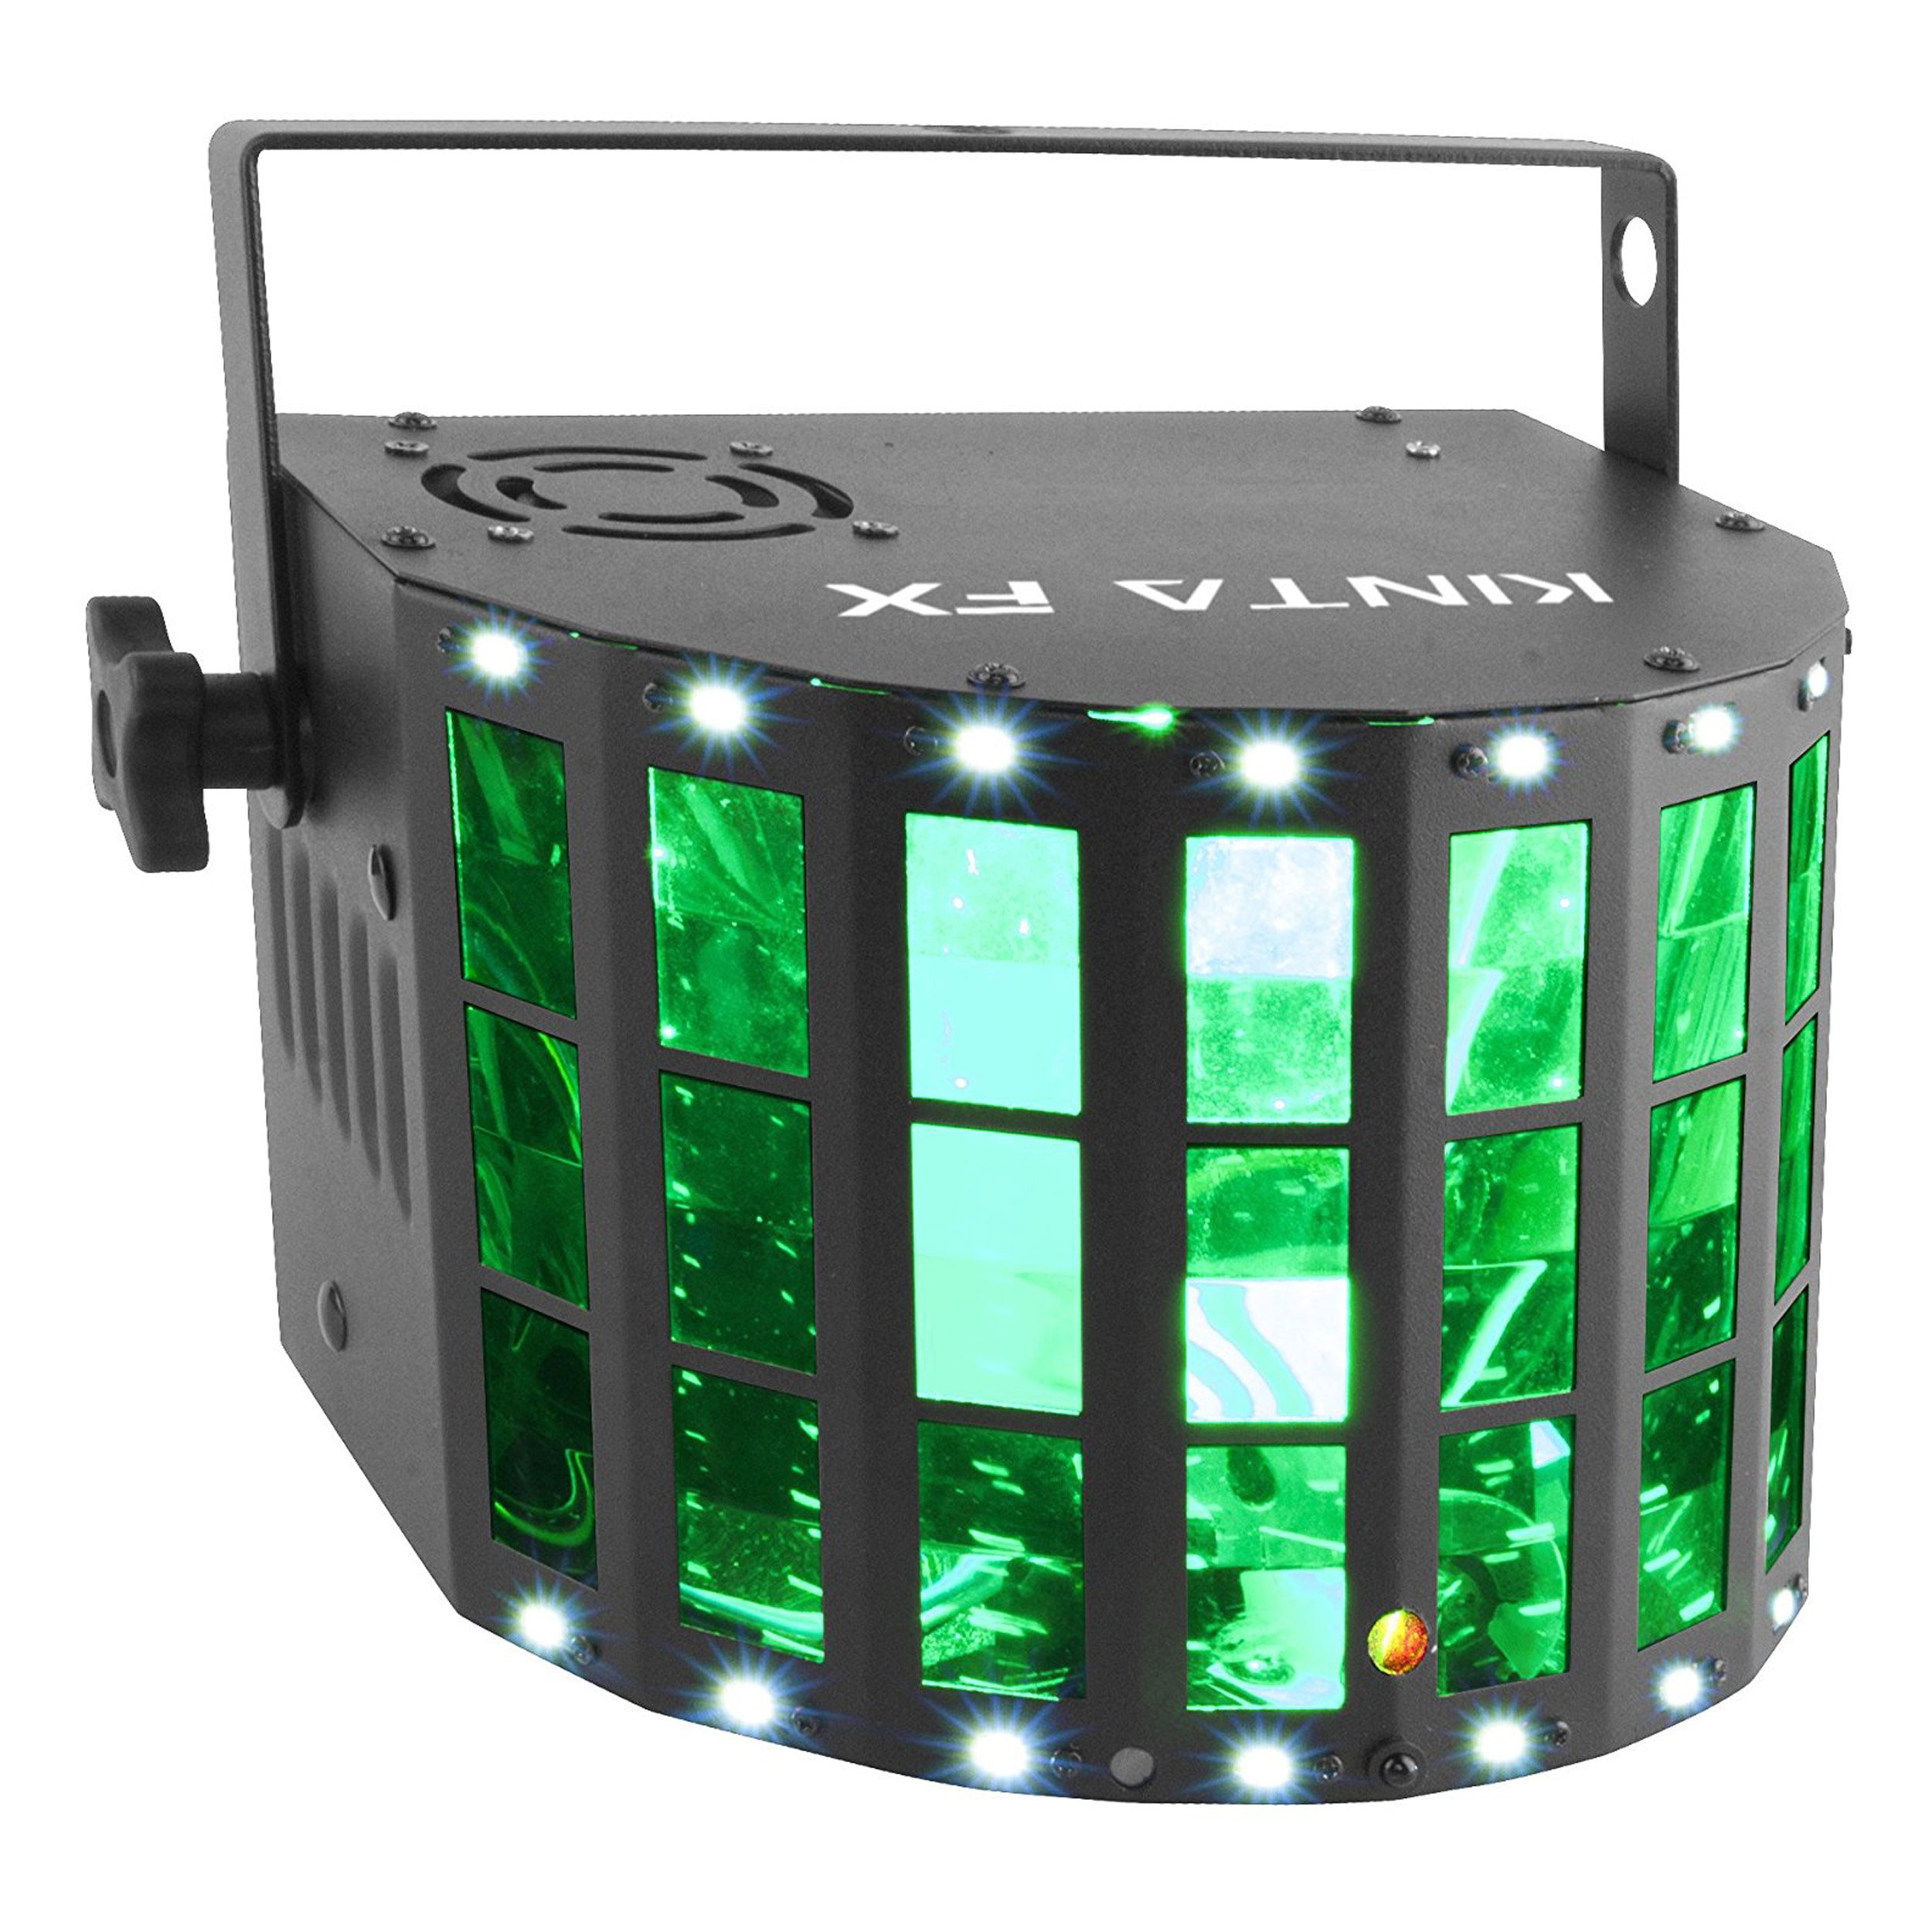 Chauvet Kinta FX DJ Lighting Multi Effect LED Derby Laser Strobe Effect Light